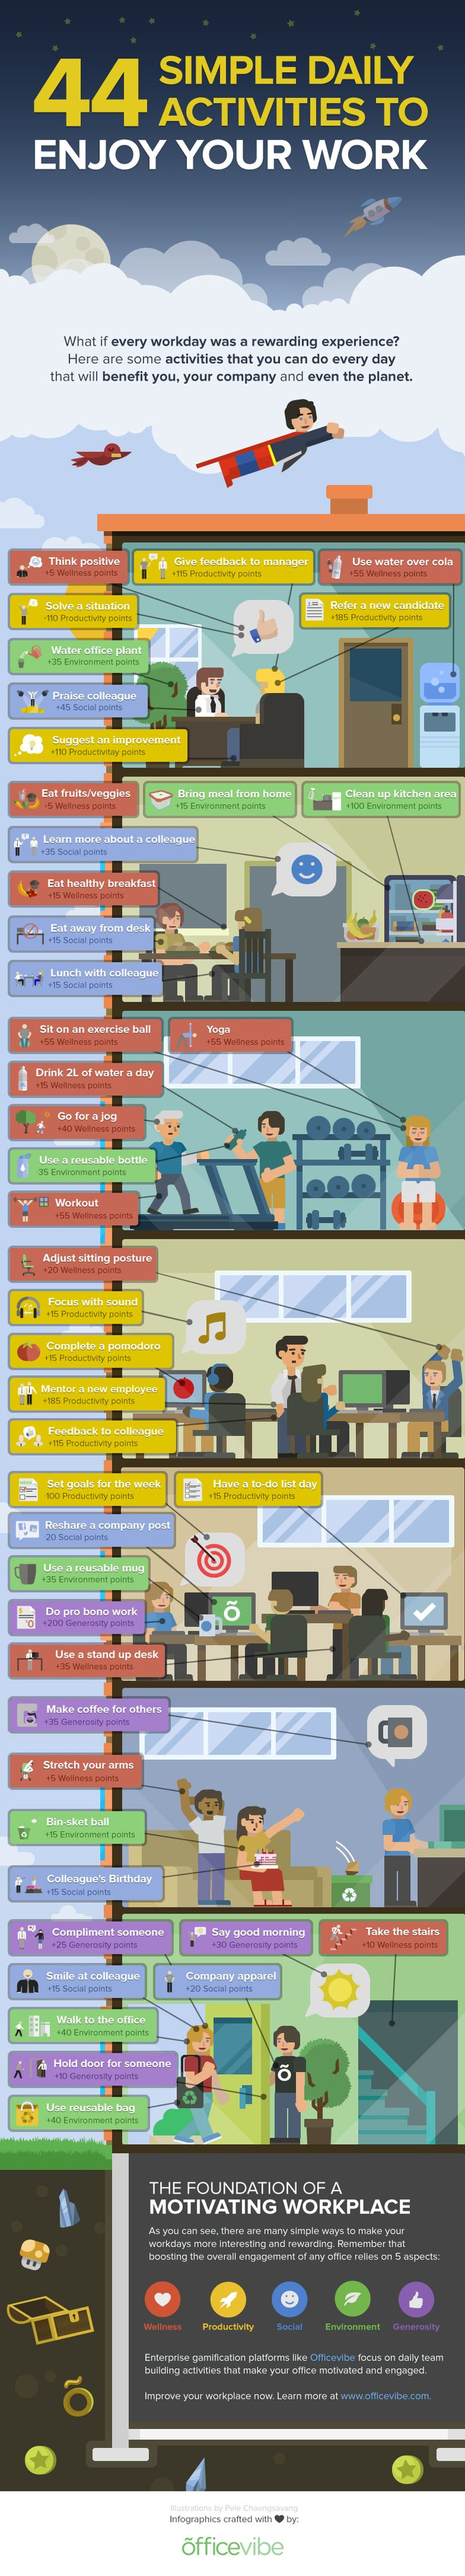 44 Simple Daily Activities To Enjoy Your Work (Infographic)